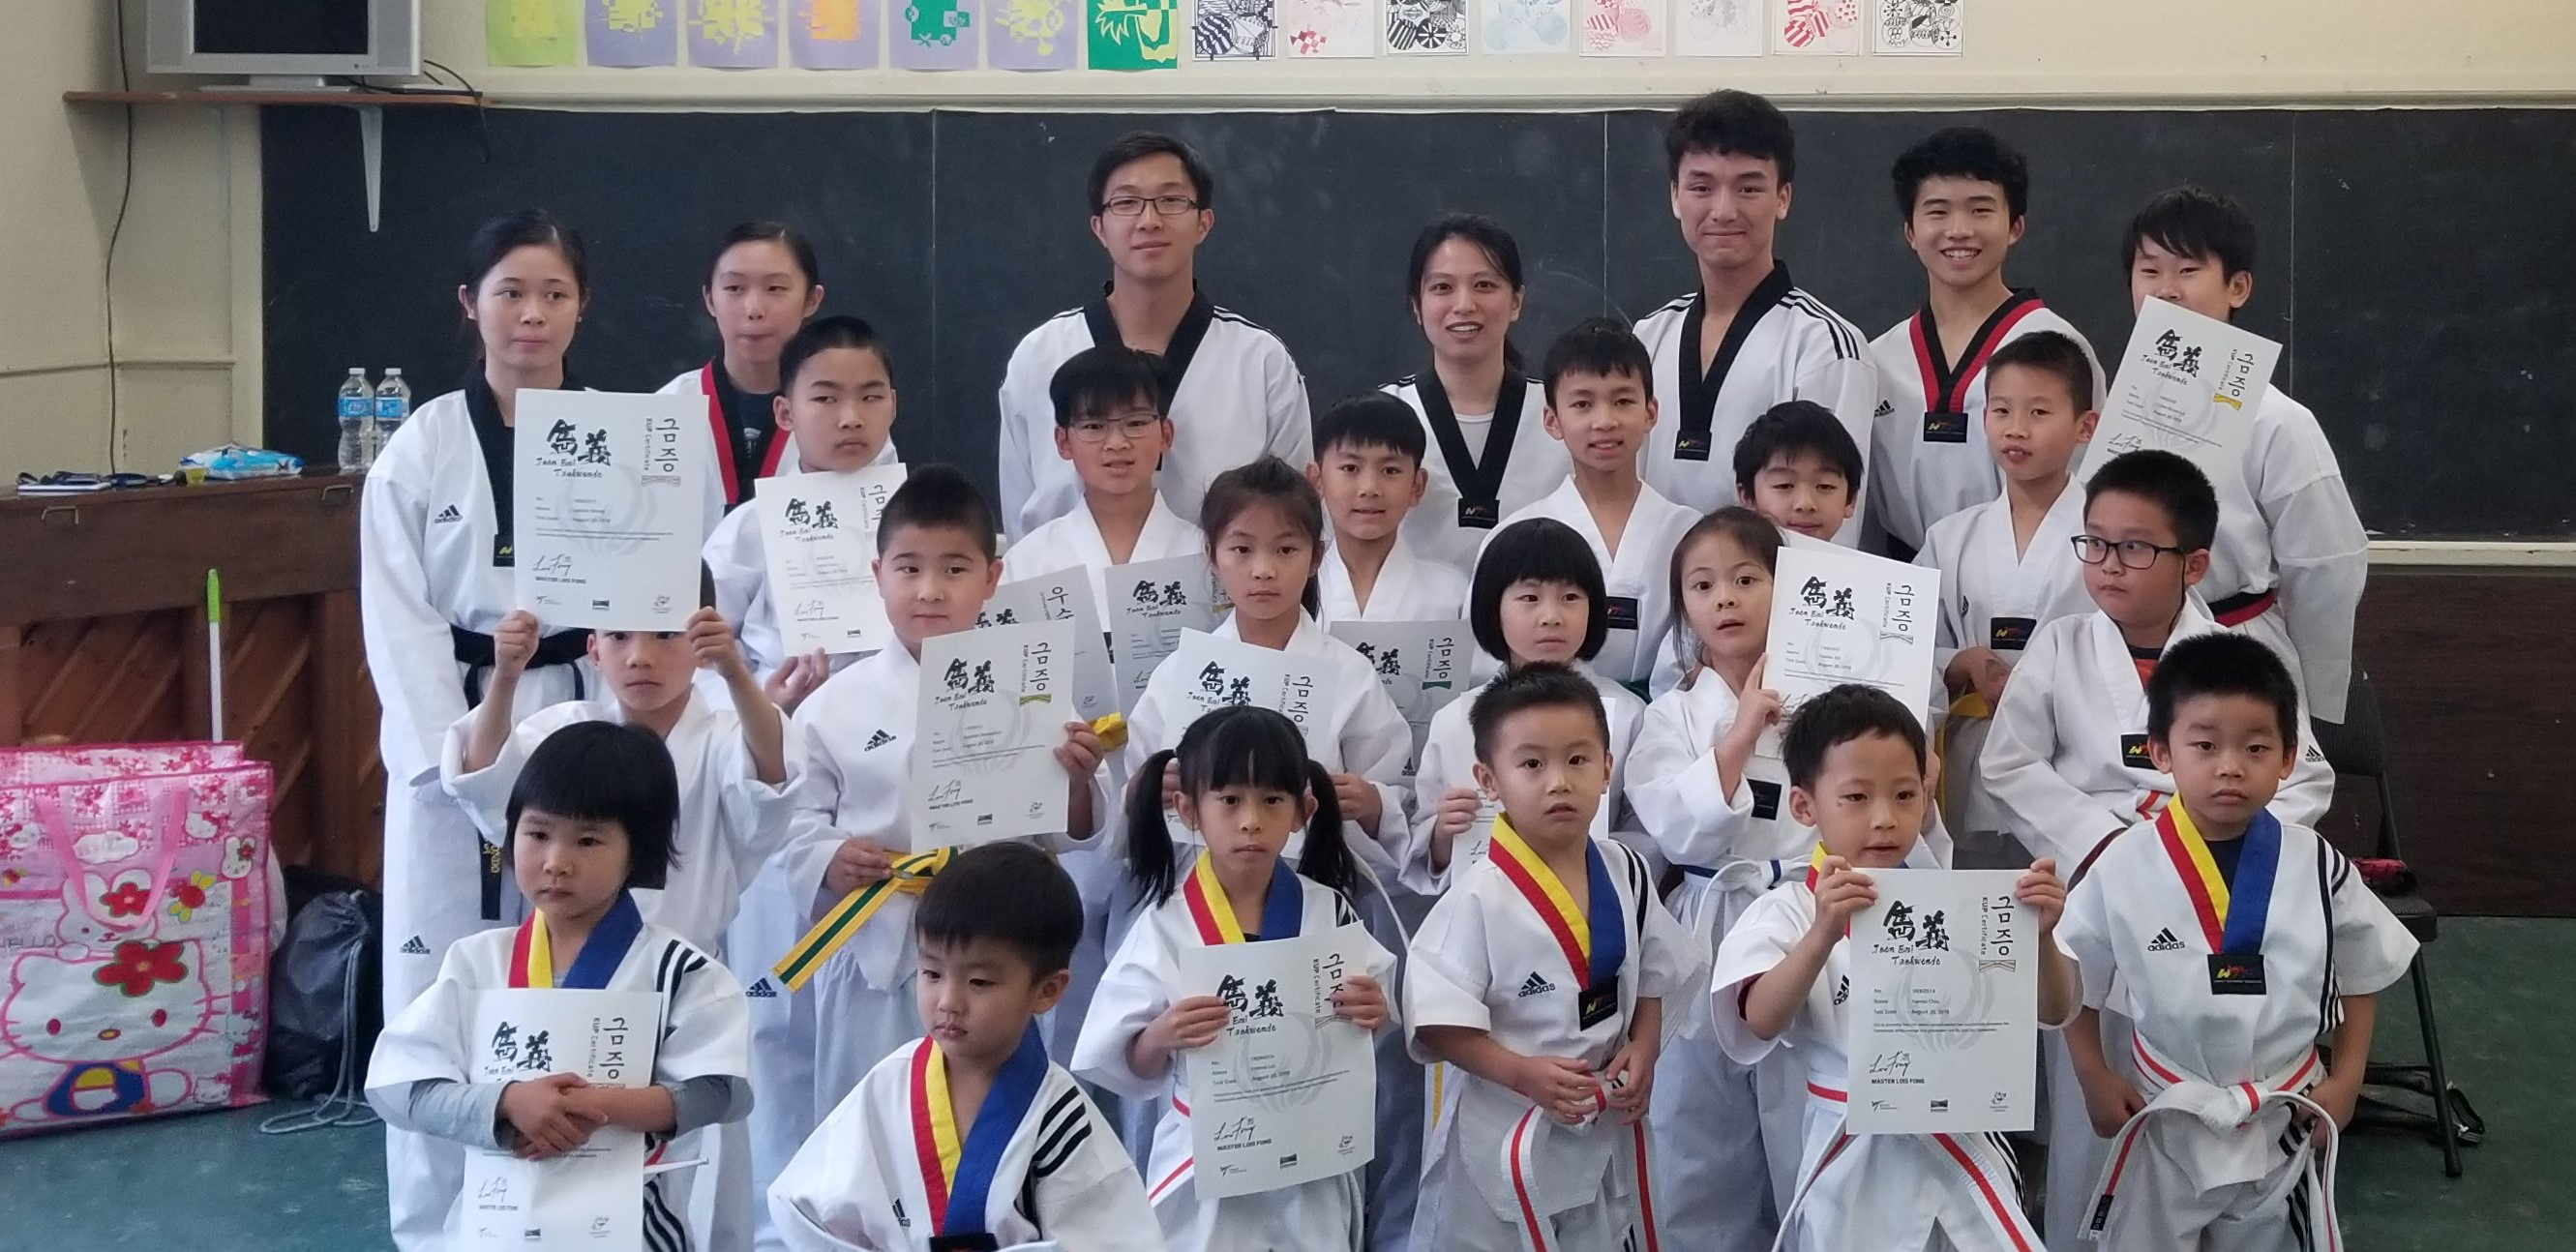 Promotion Test in August 2018